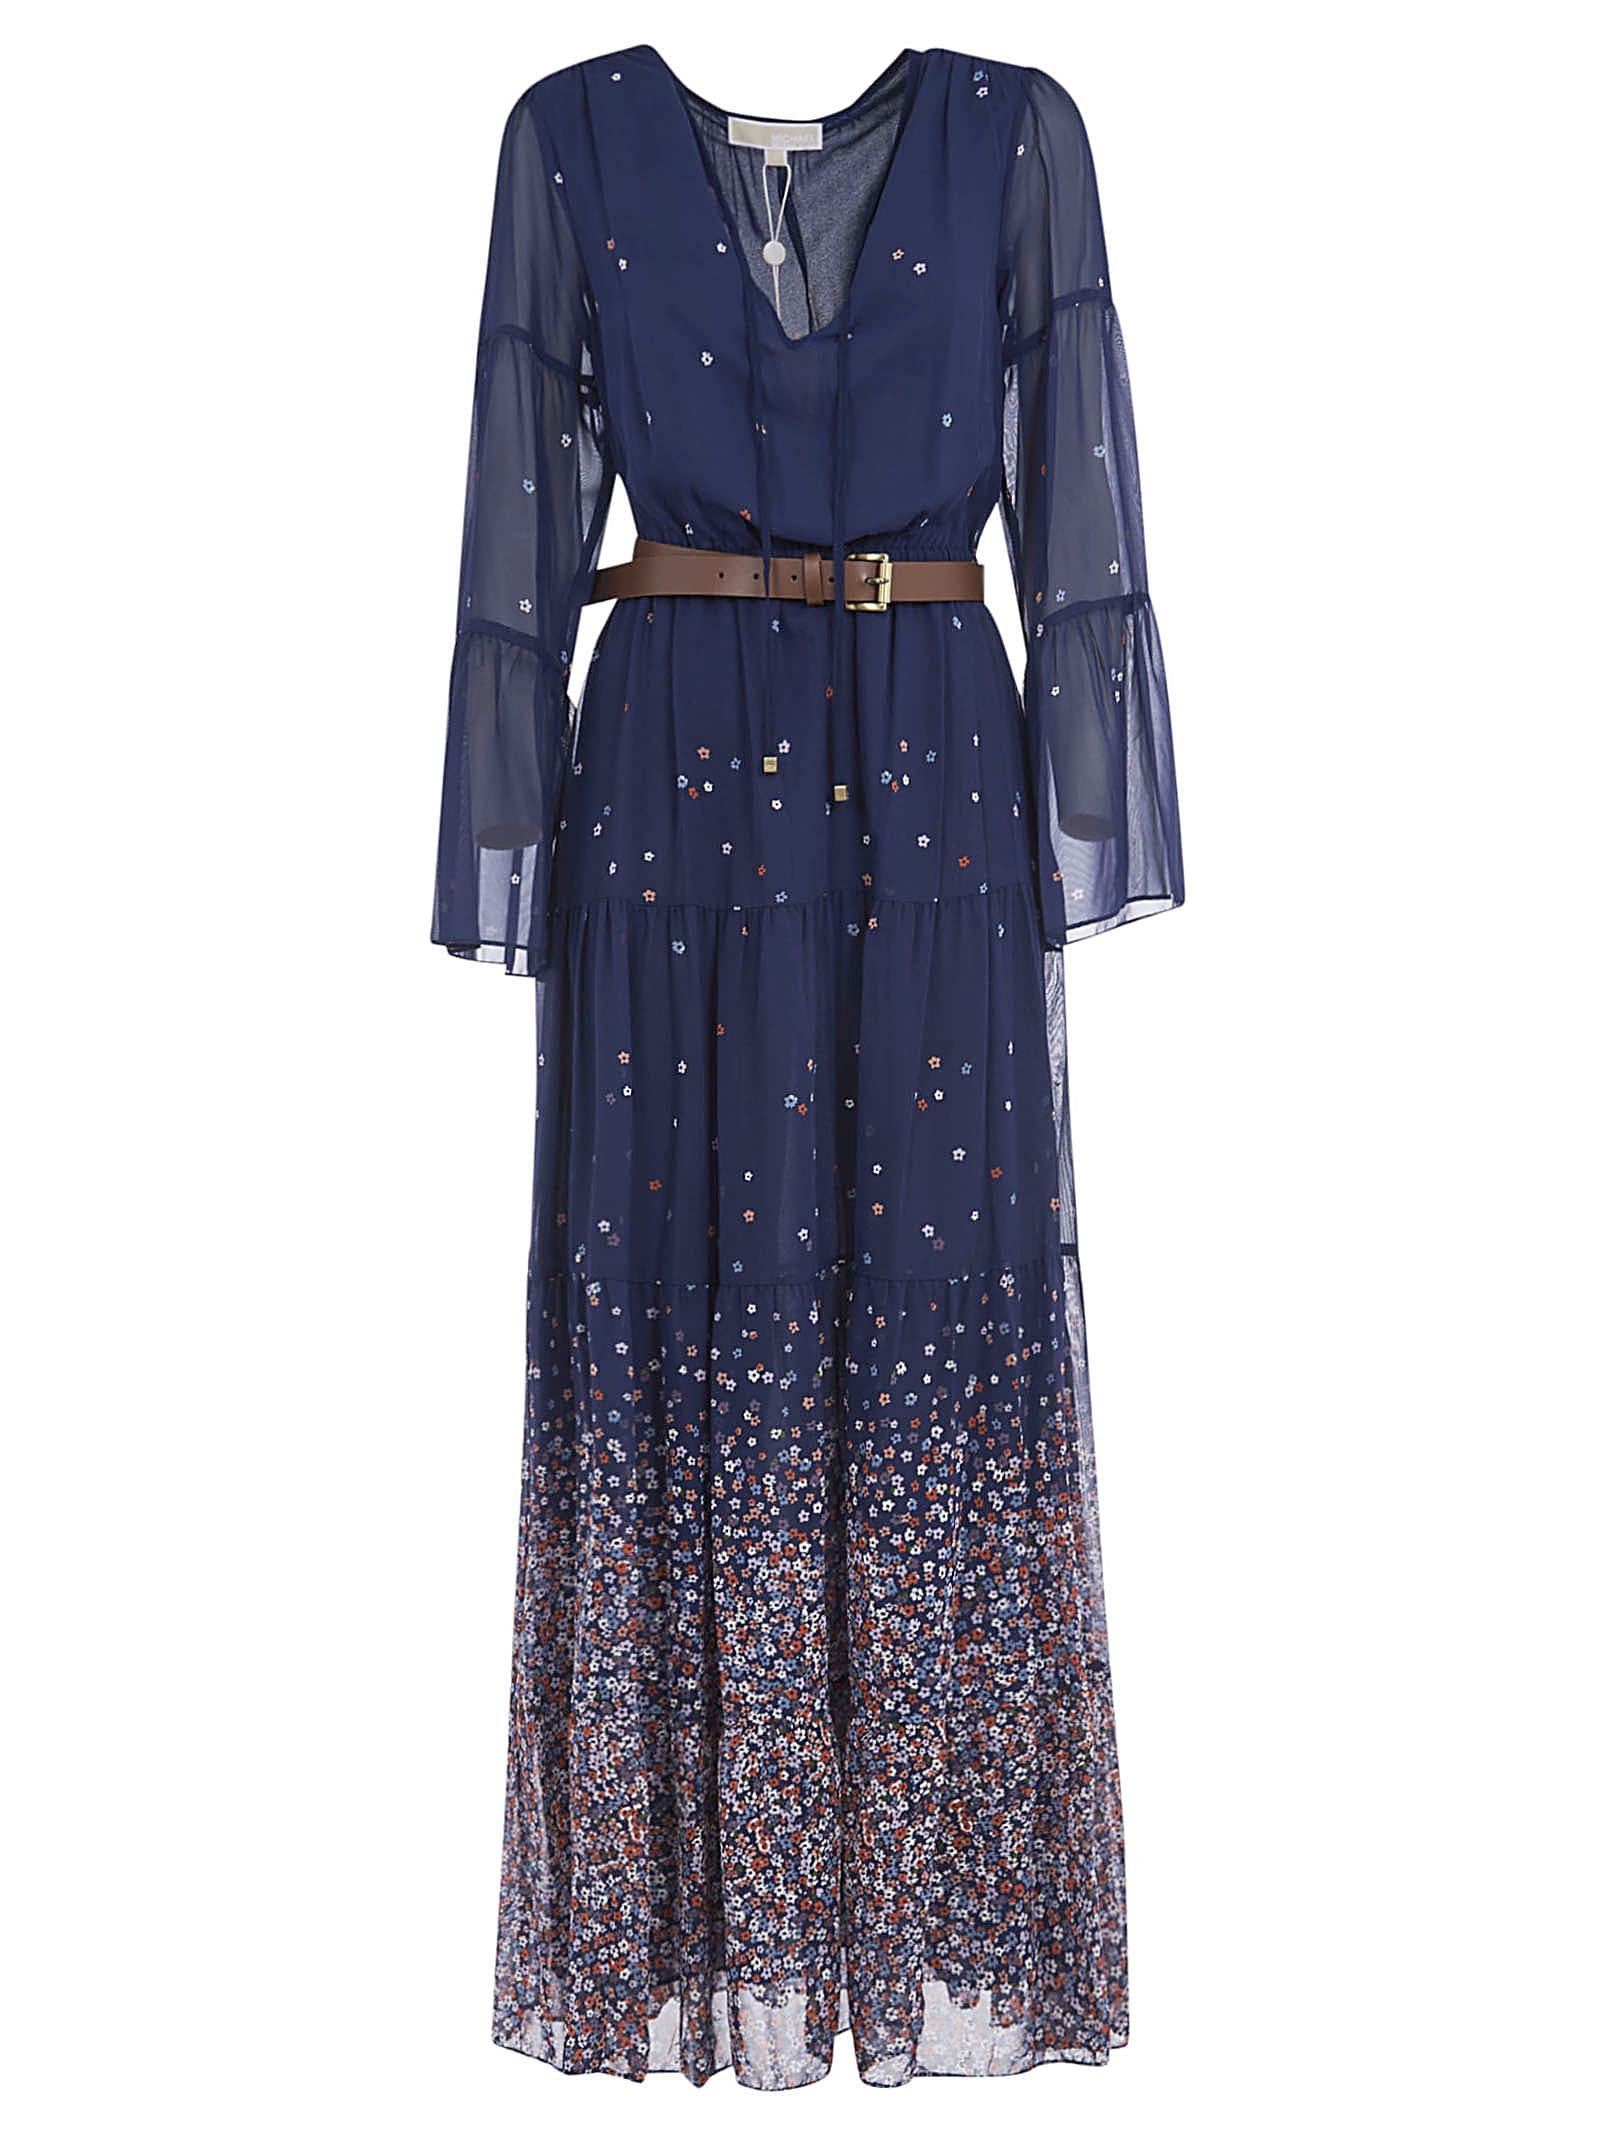 Buy Michael Kors Belted Long Floral Print Dress online, shop Michael Kors with free shipping